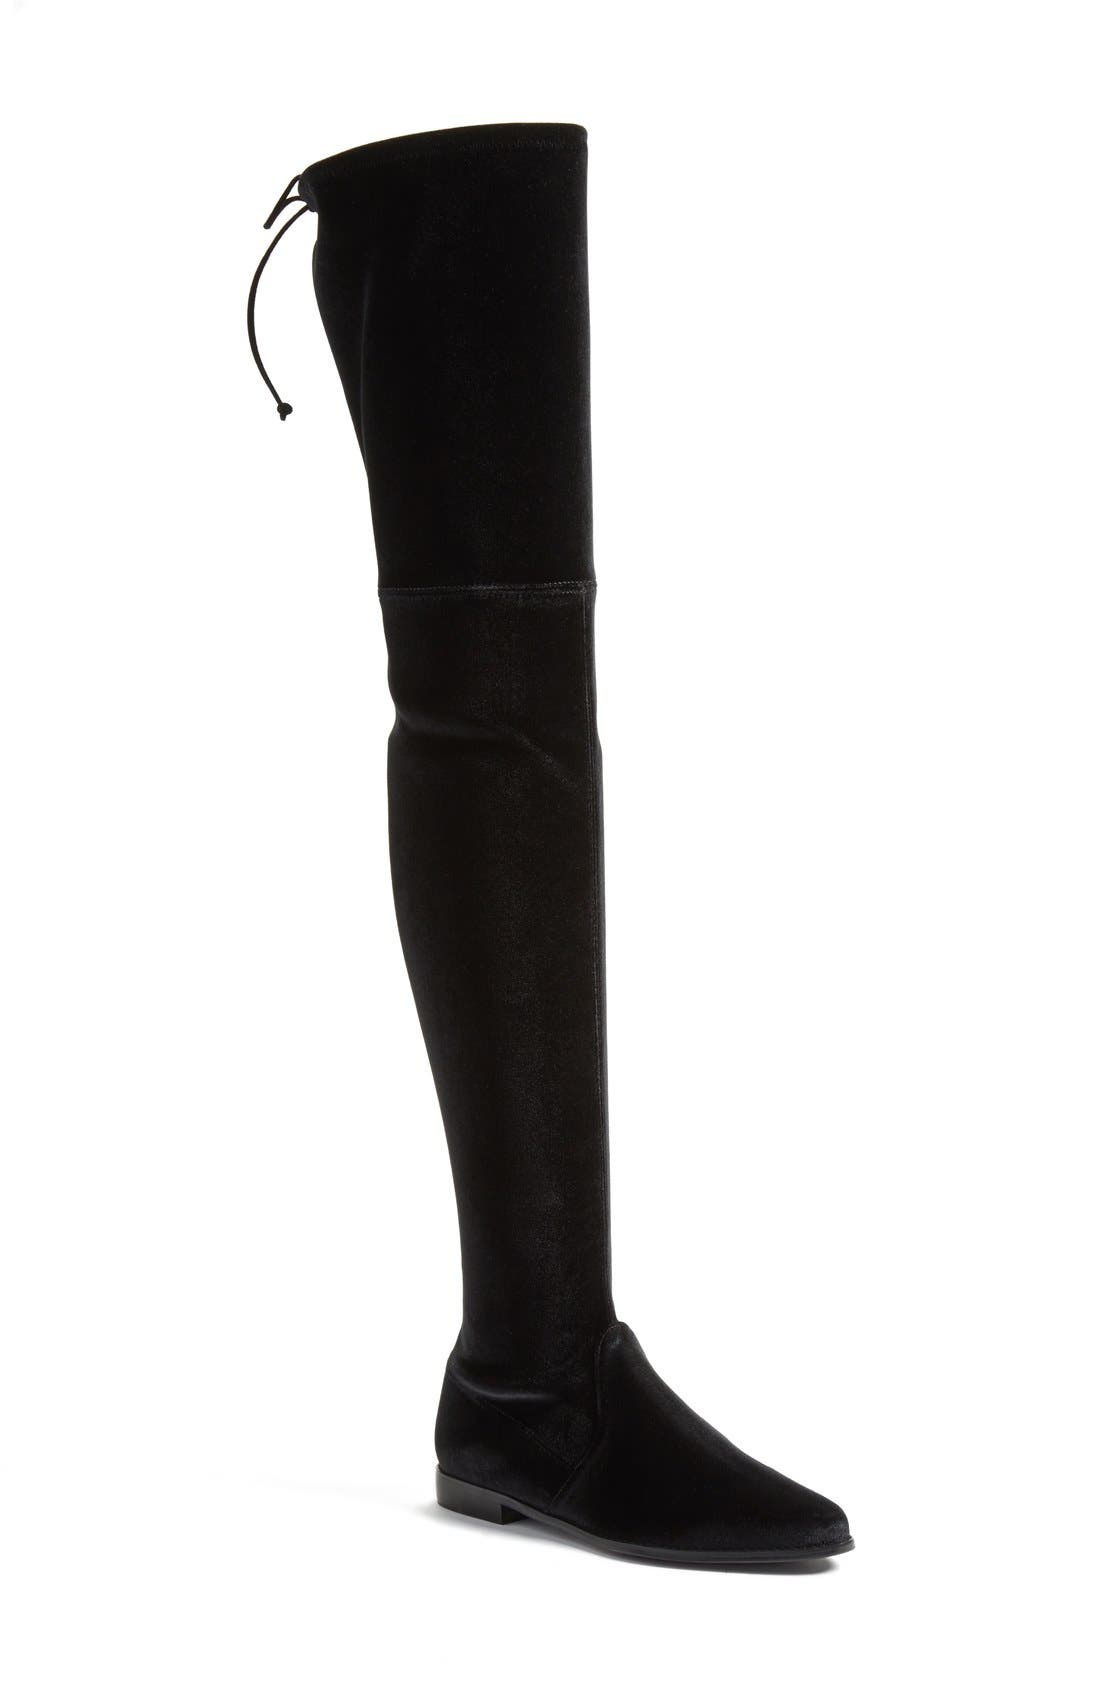 Main Image - Stuart Weitzman 'Leggylady' Over the Knee Boot (Women)